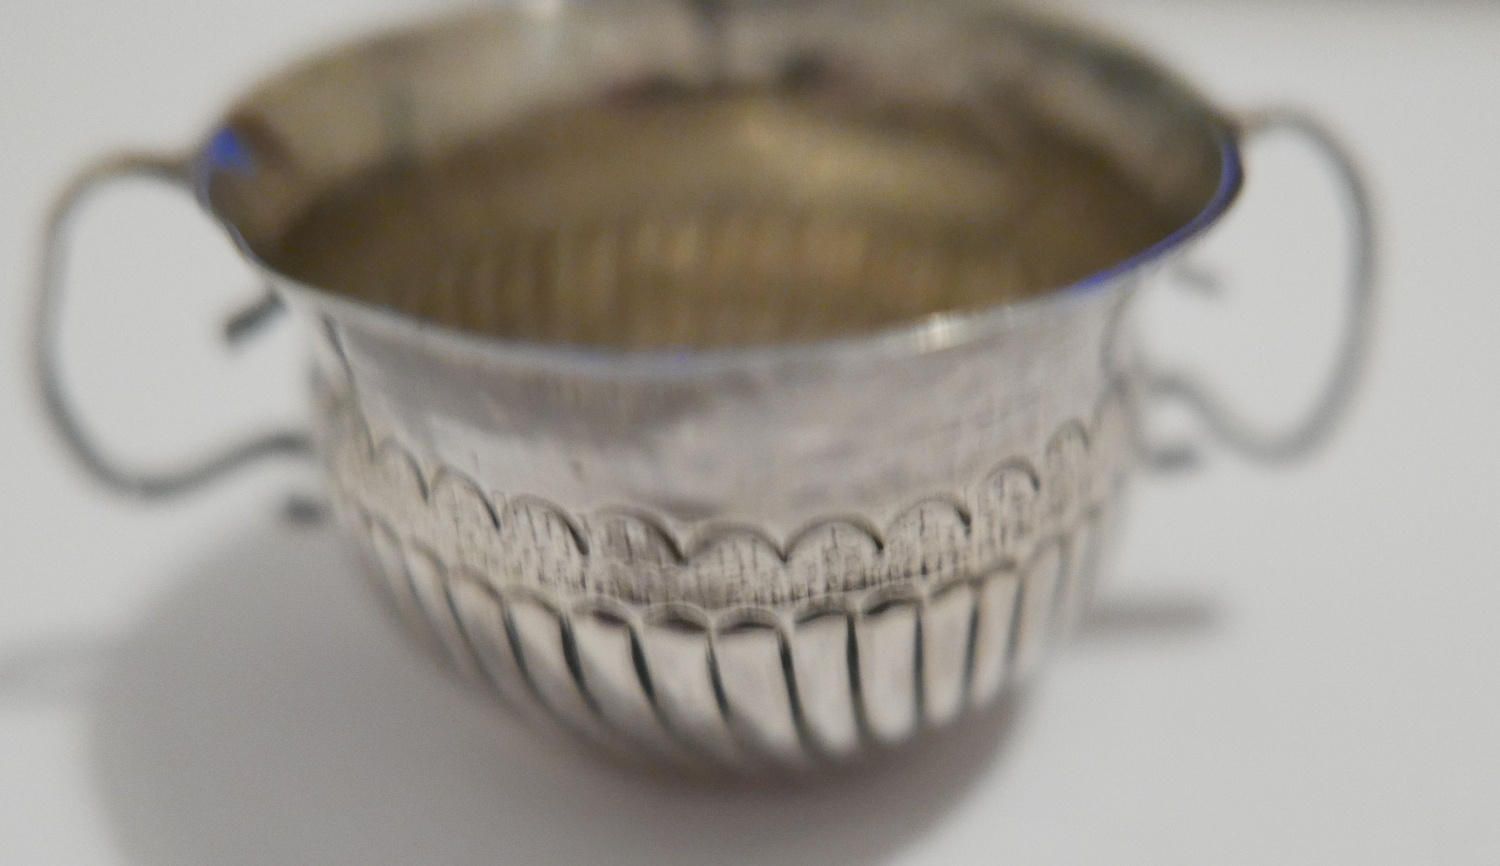 Lot 8 - Antique George 1st Babies Silver Porringer hallmarked for London 1716 - 45mm diameter